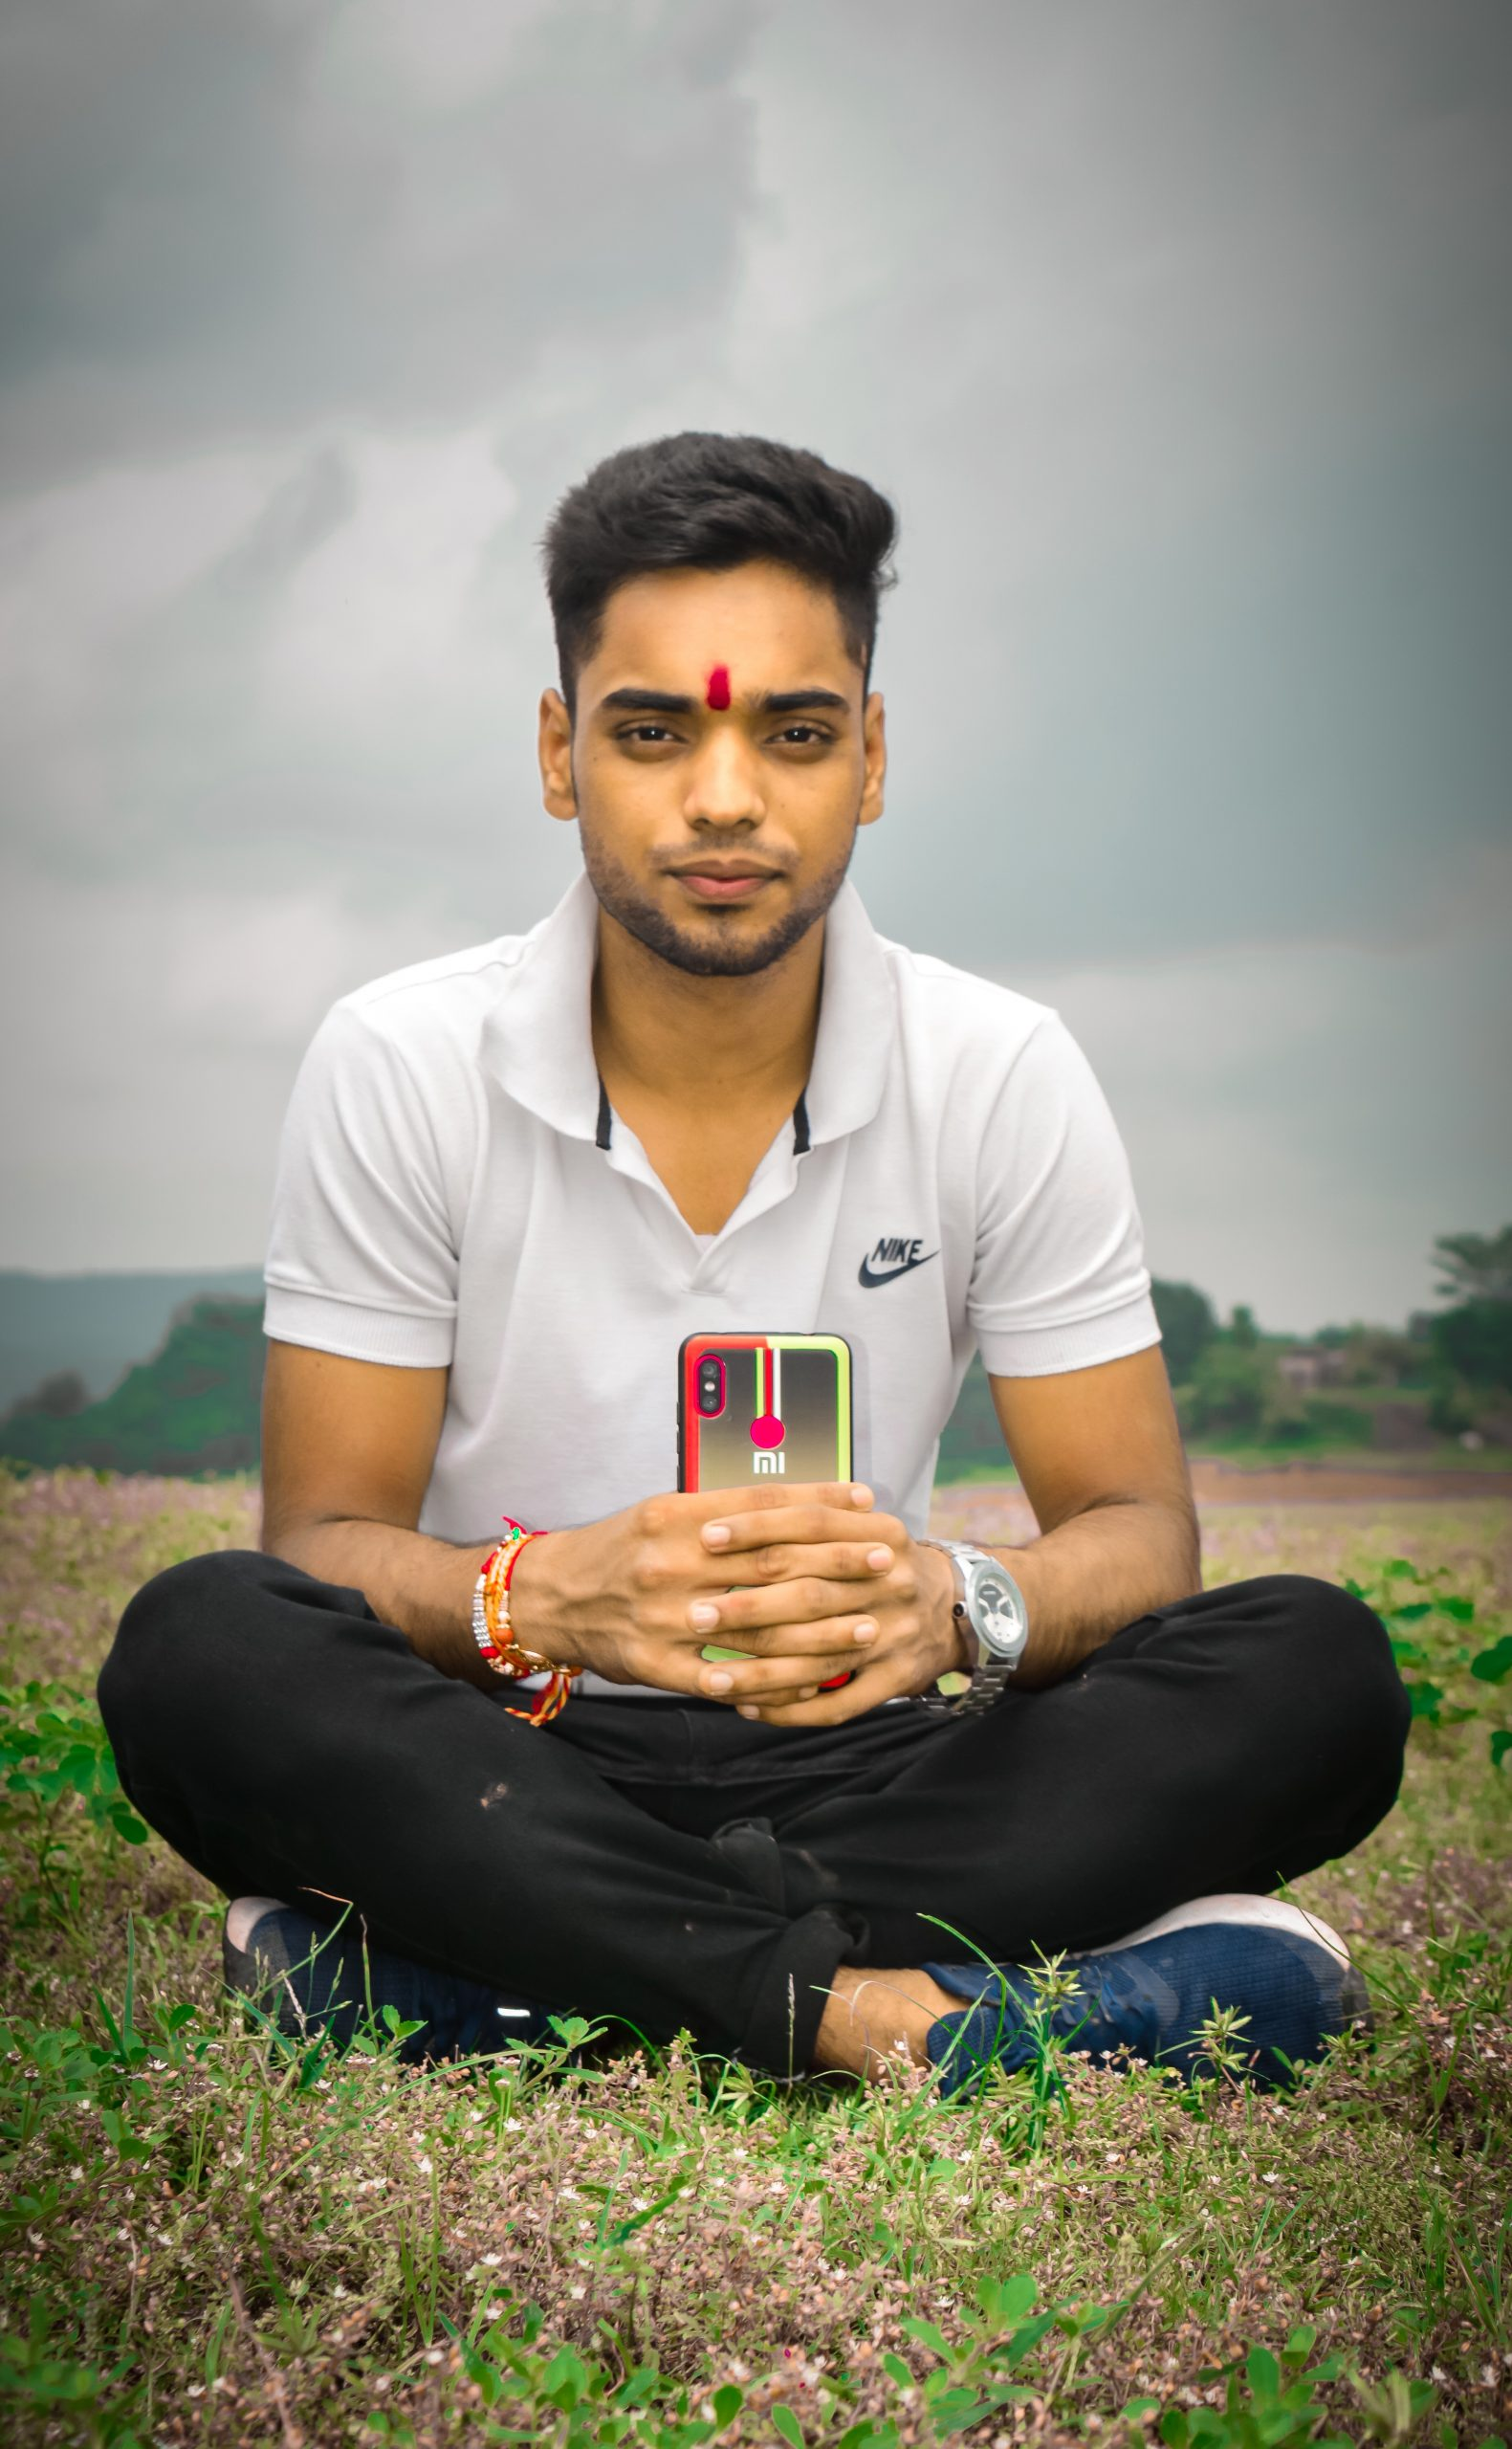 A boy with phone is hand